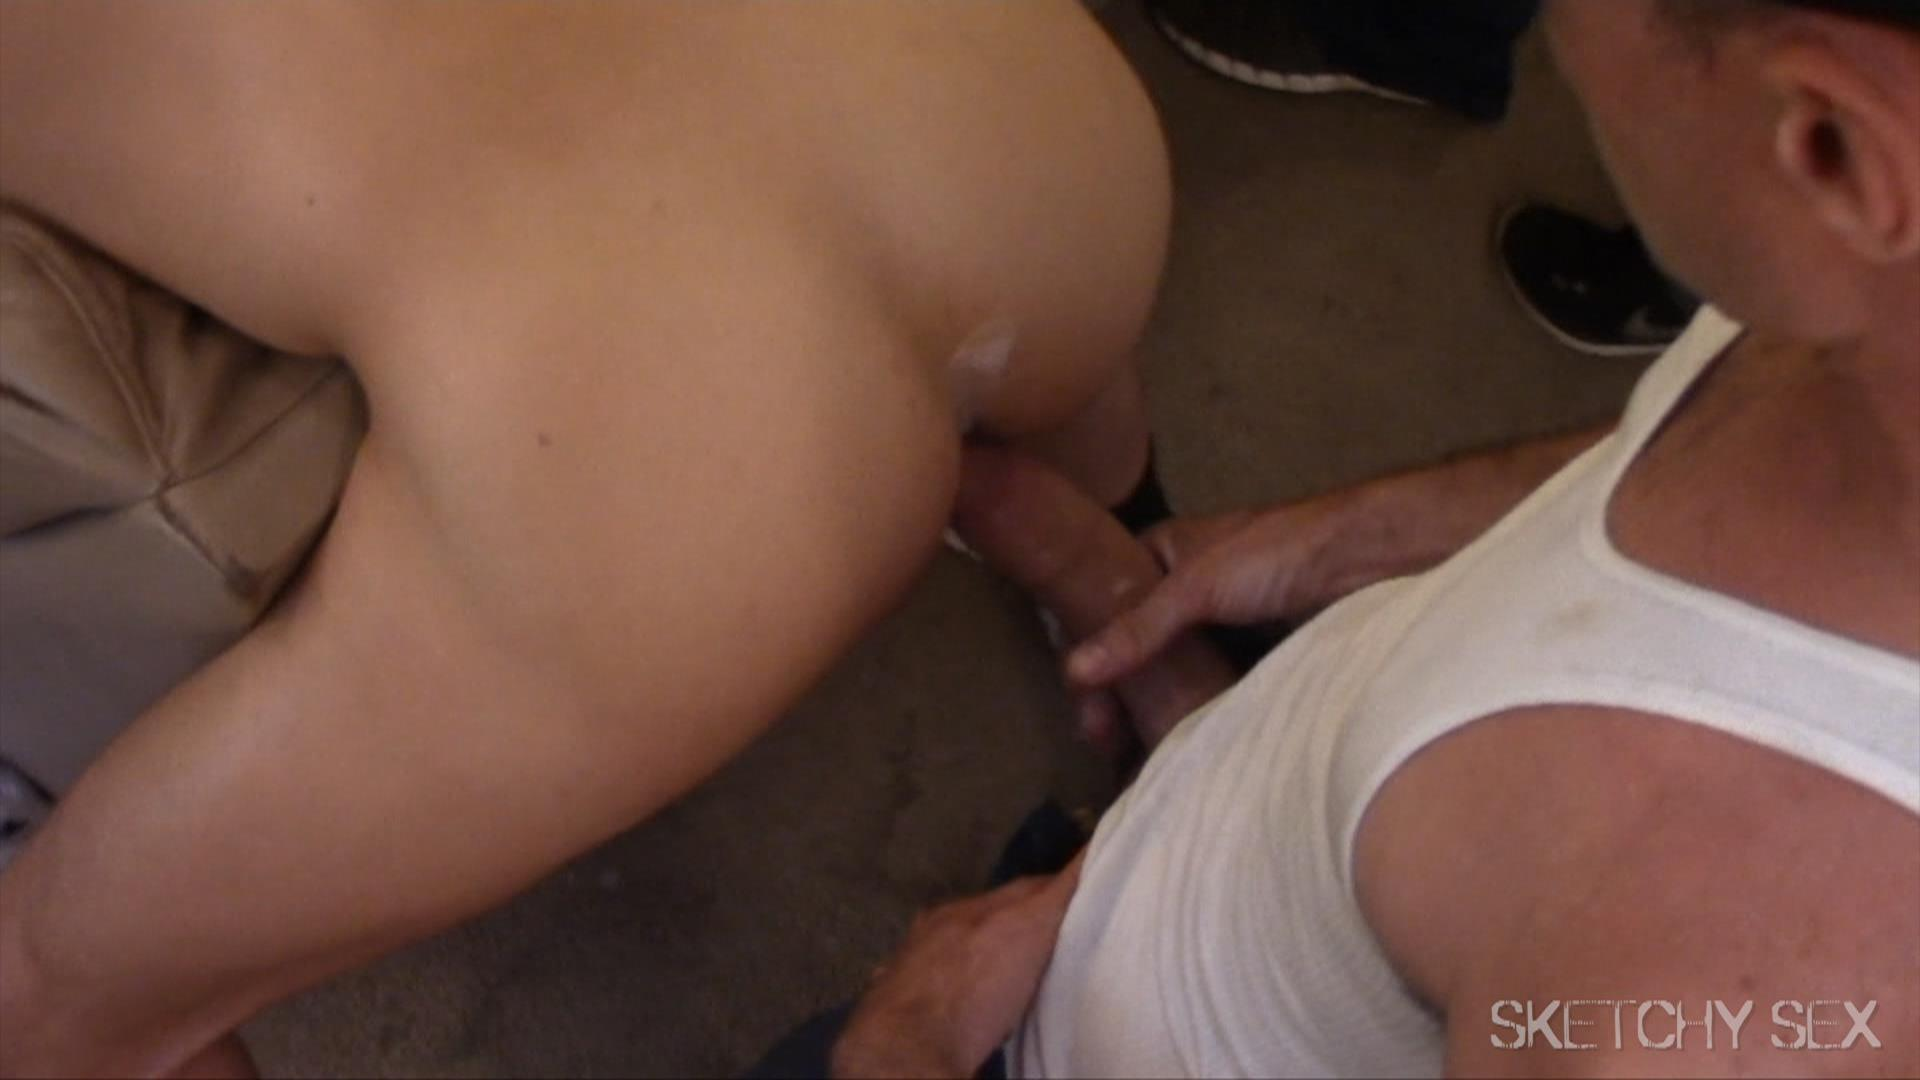 Sketchy-Sex-Download-Free-Video-Bareback-Sex-Party-Amateur-Gay-Porn-21 Jock Takes As Many Raw Loads Up The Ass As Possible